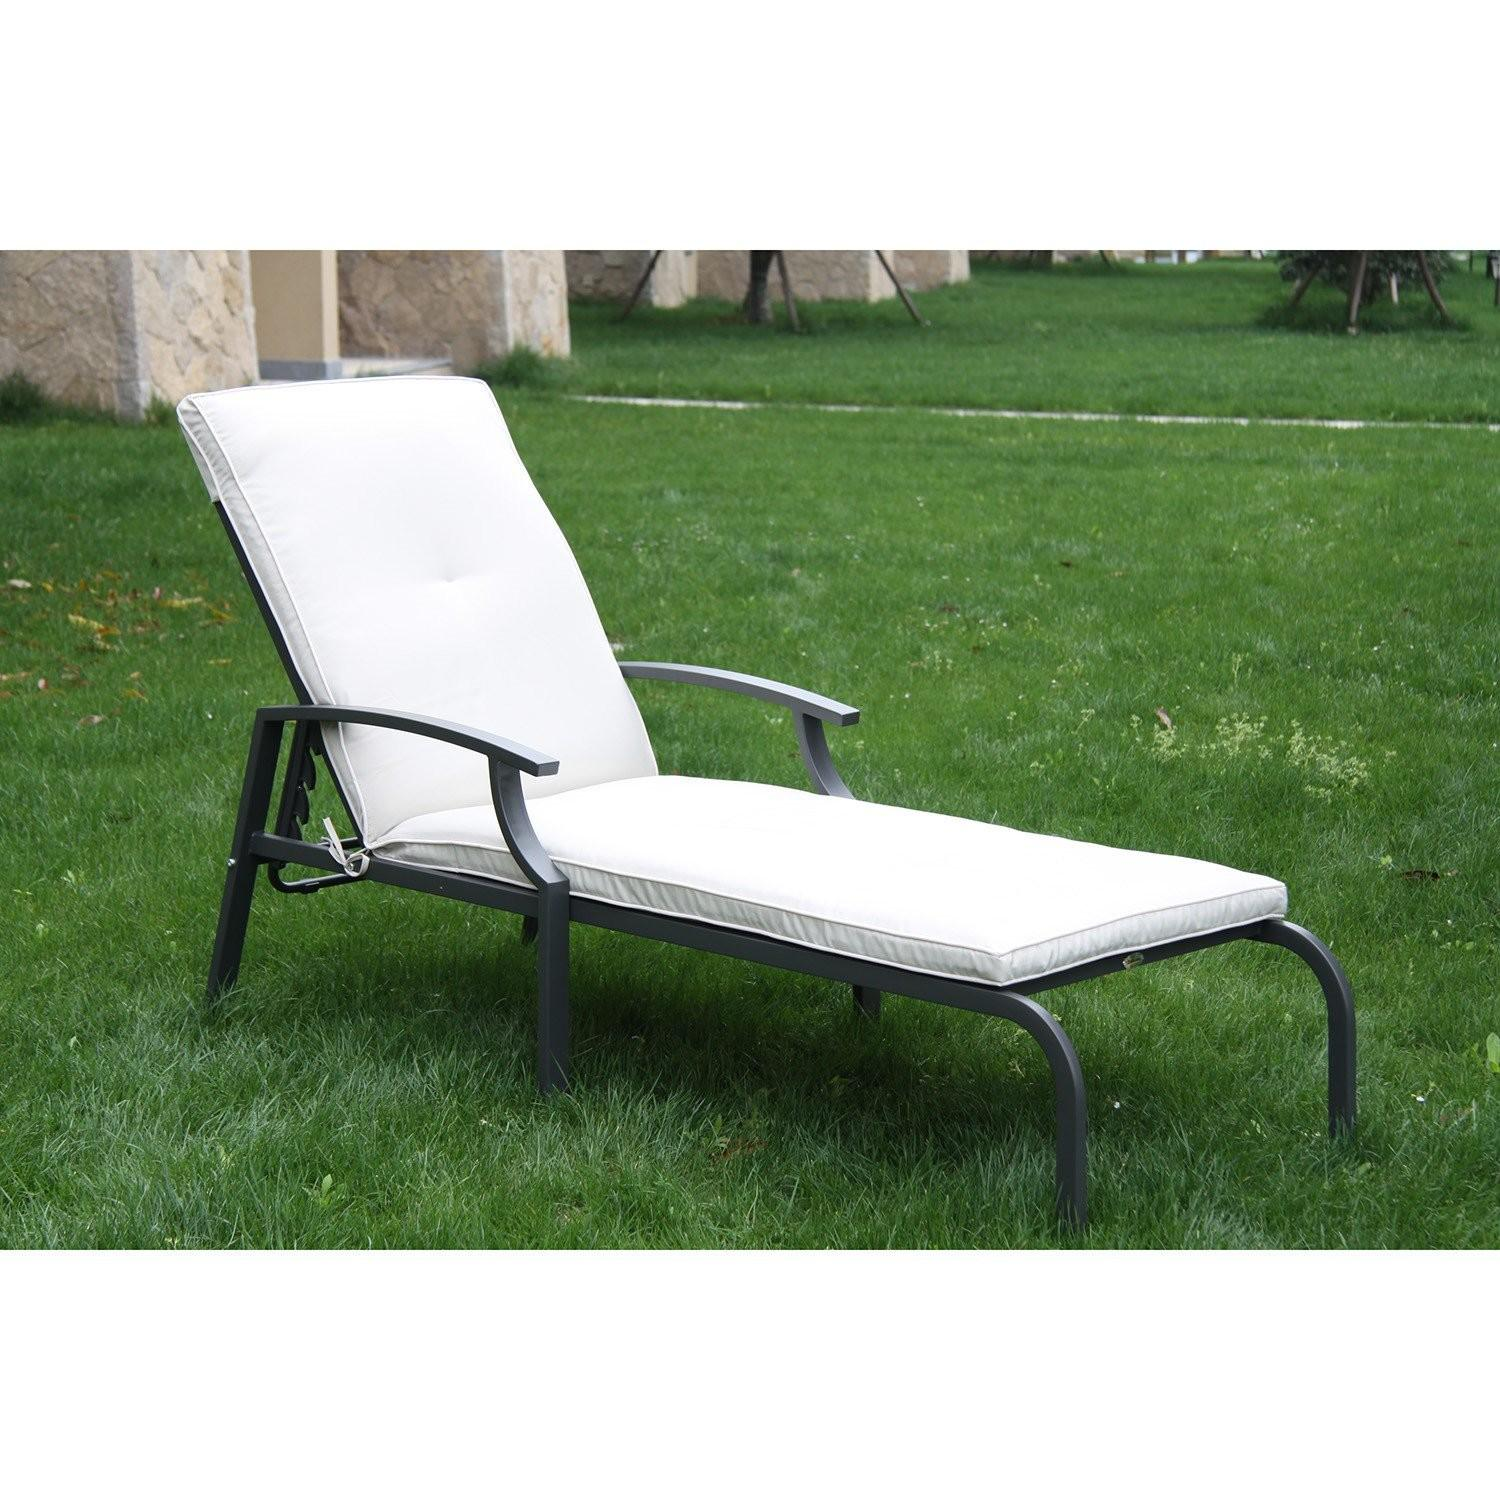 Outsunny Outdoor Lounge Chaise Chair Recliner Garden Patio